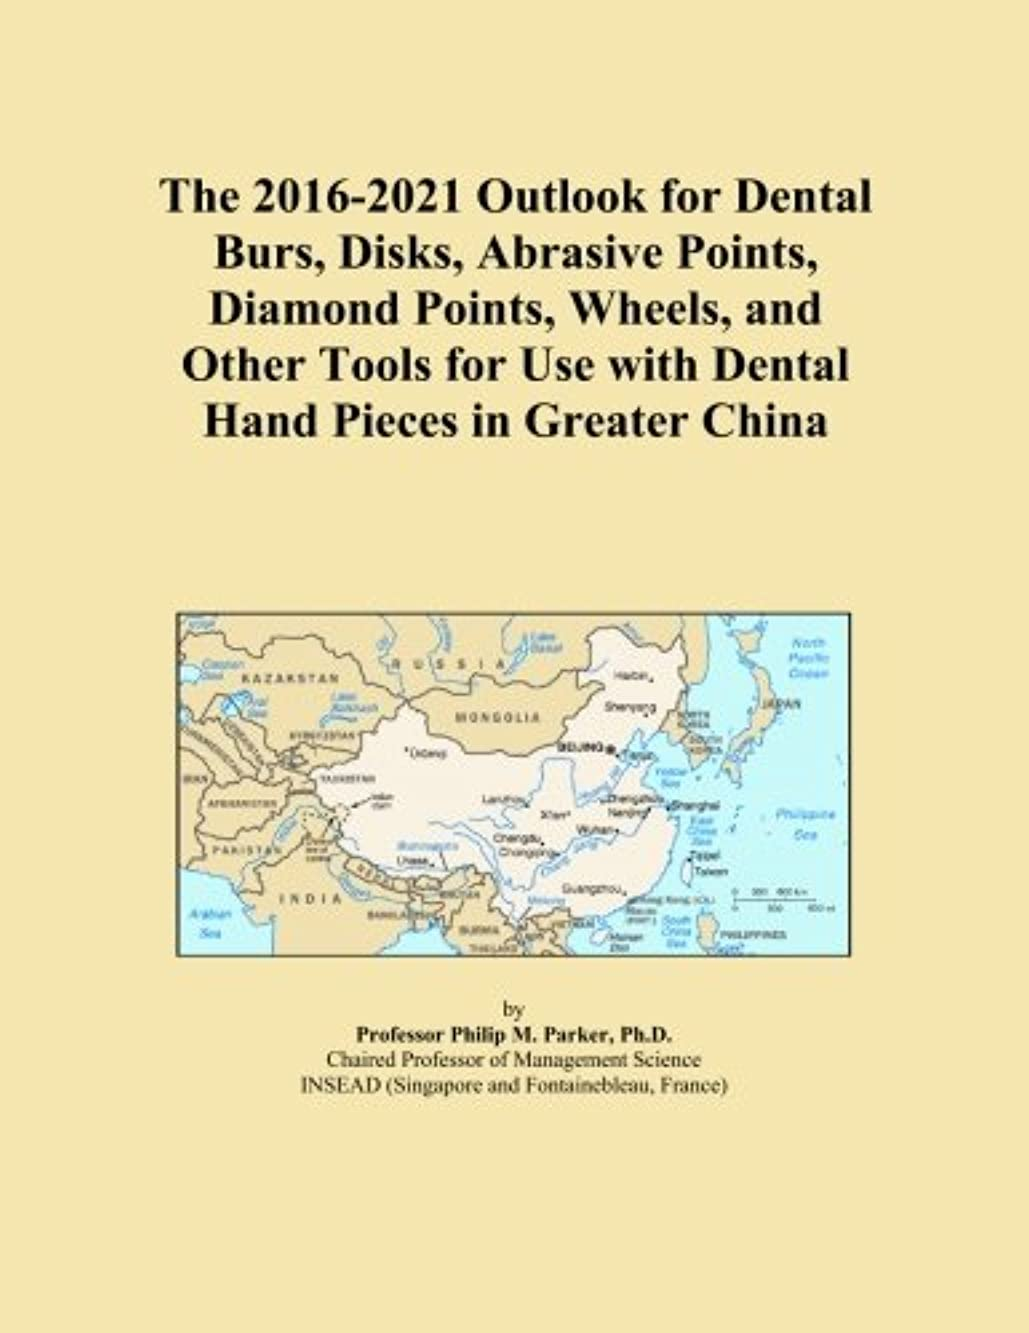 The 2016-2021 Outlook for Dental Burs, Disks, Abrasive Points, Diamond Points, Wheels, and Other Tools for Use with Dental Hand Pieces in Greater China